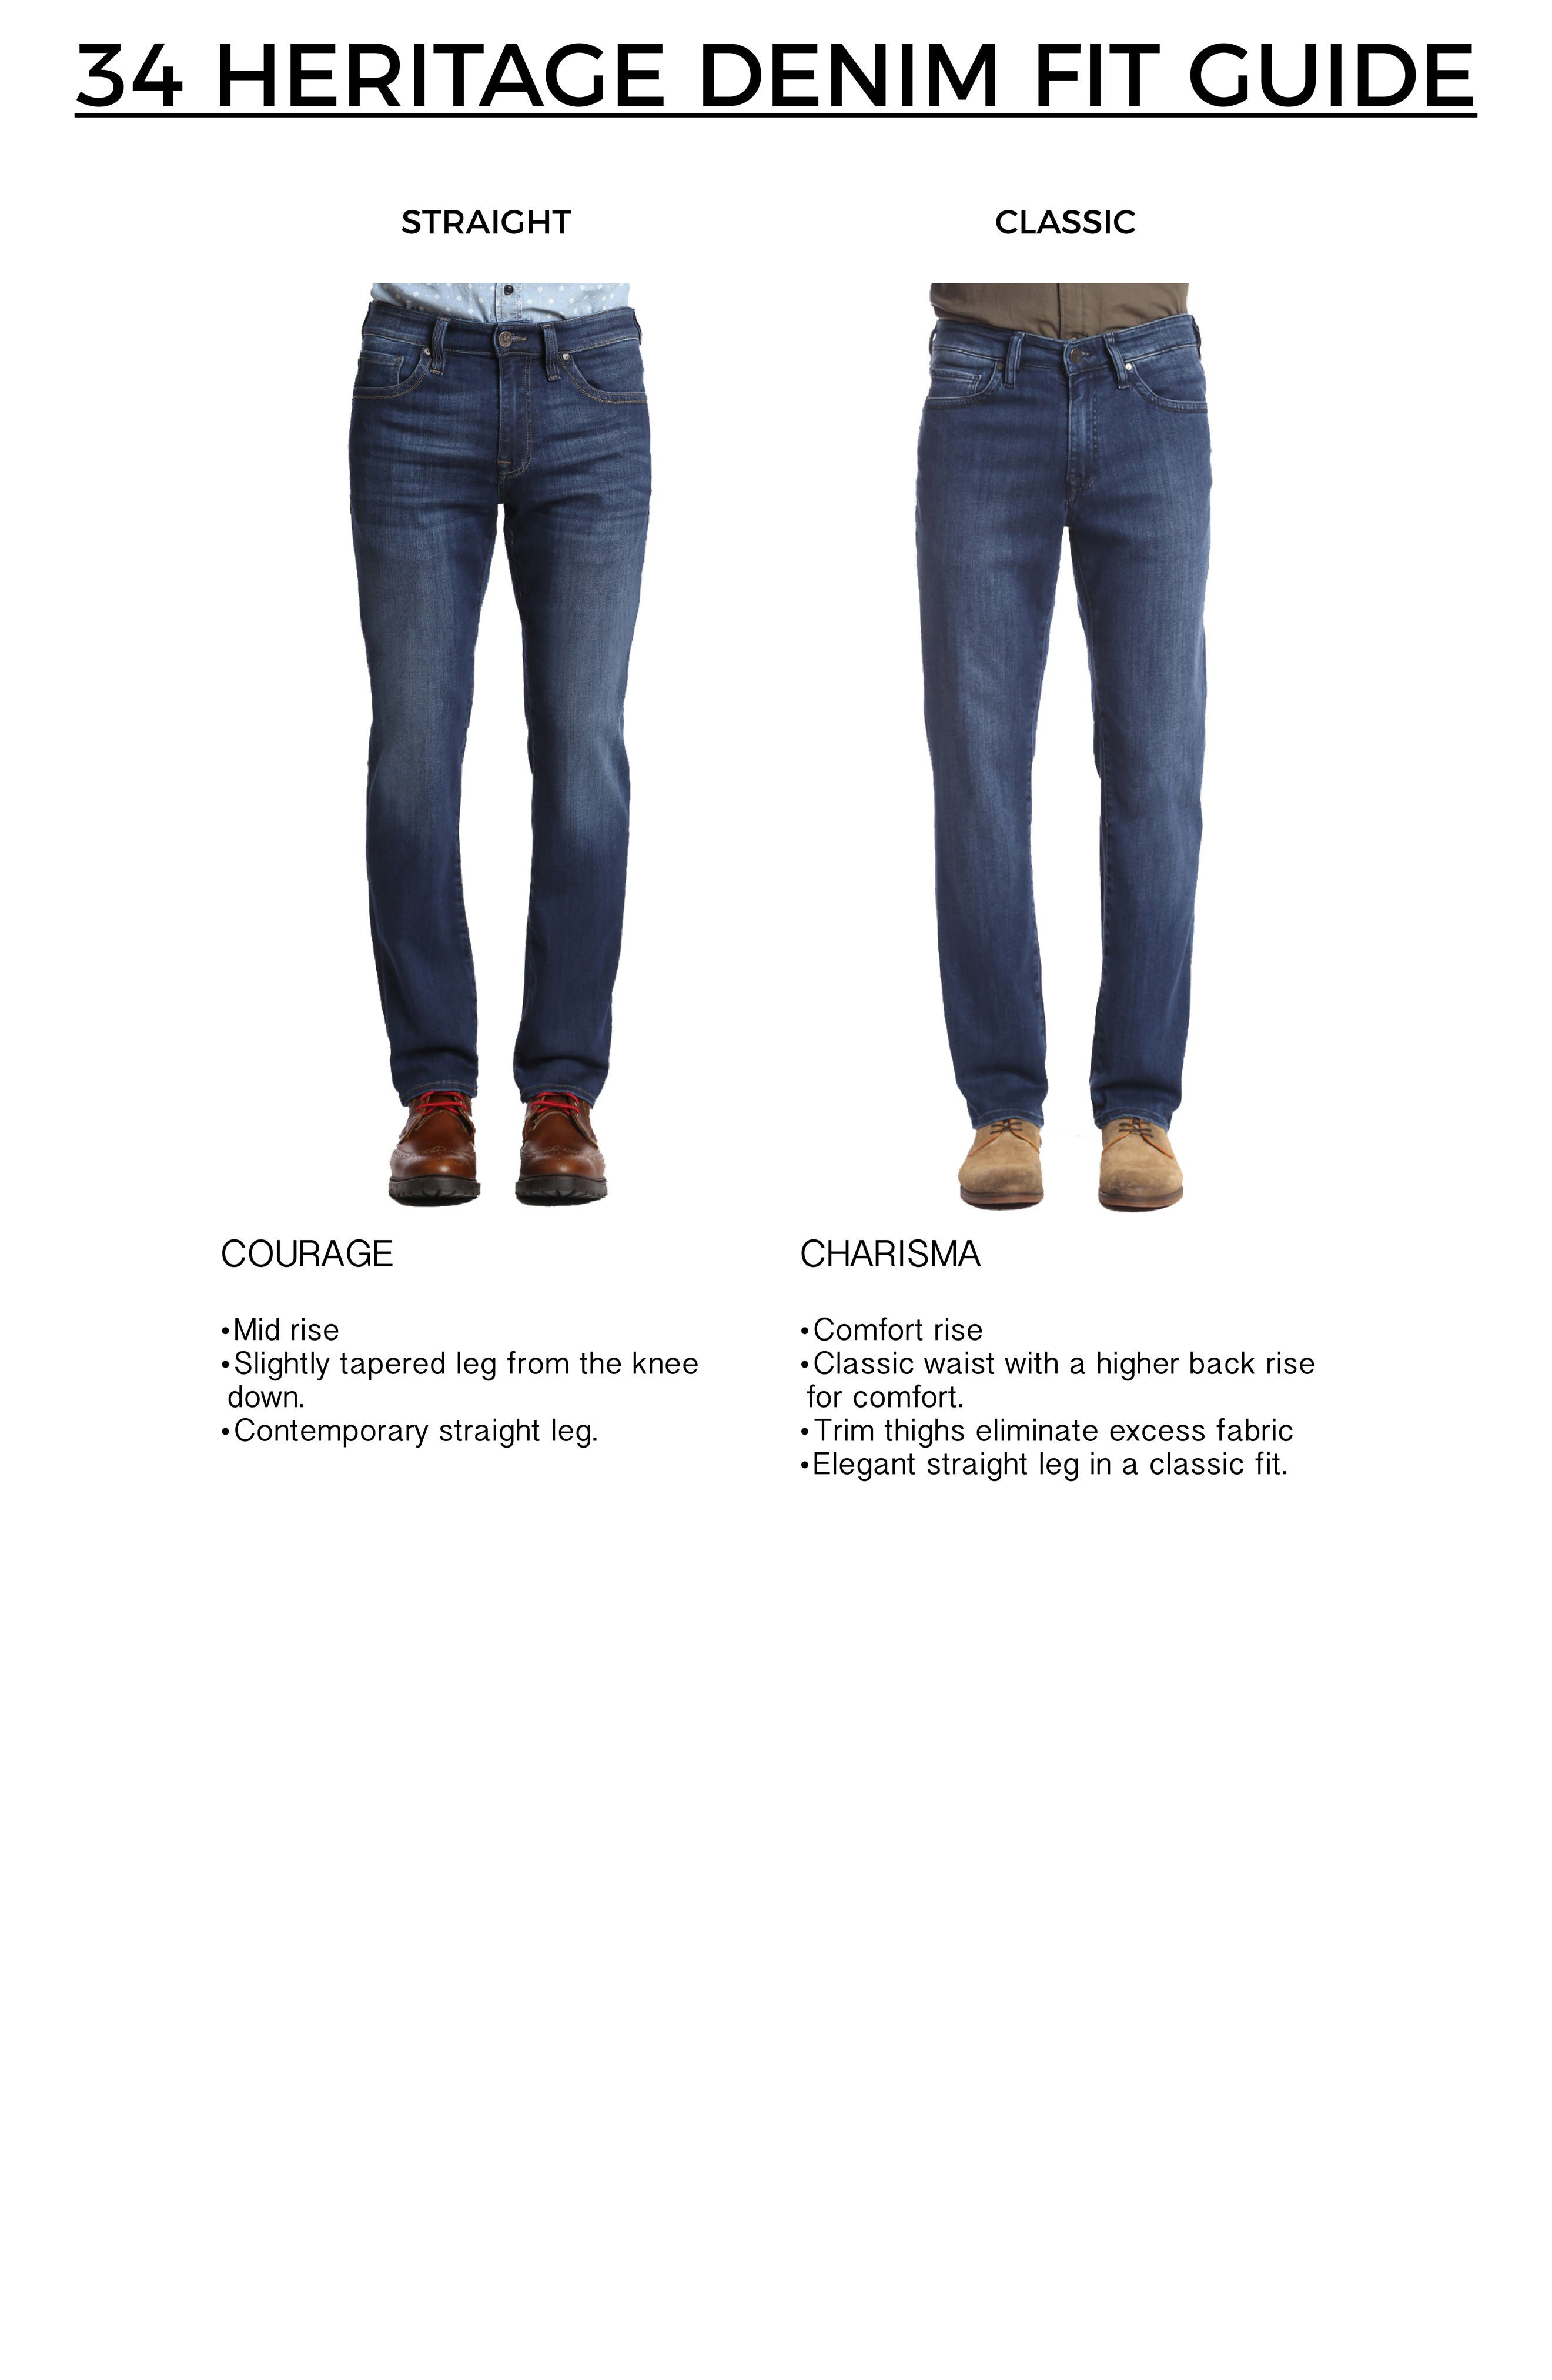 'Charisma' Relaxed Fit Jeans,                             Alternate thumbnail 8, color,                             Brown Comfort